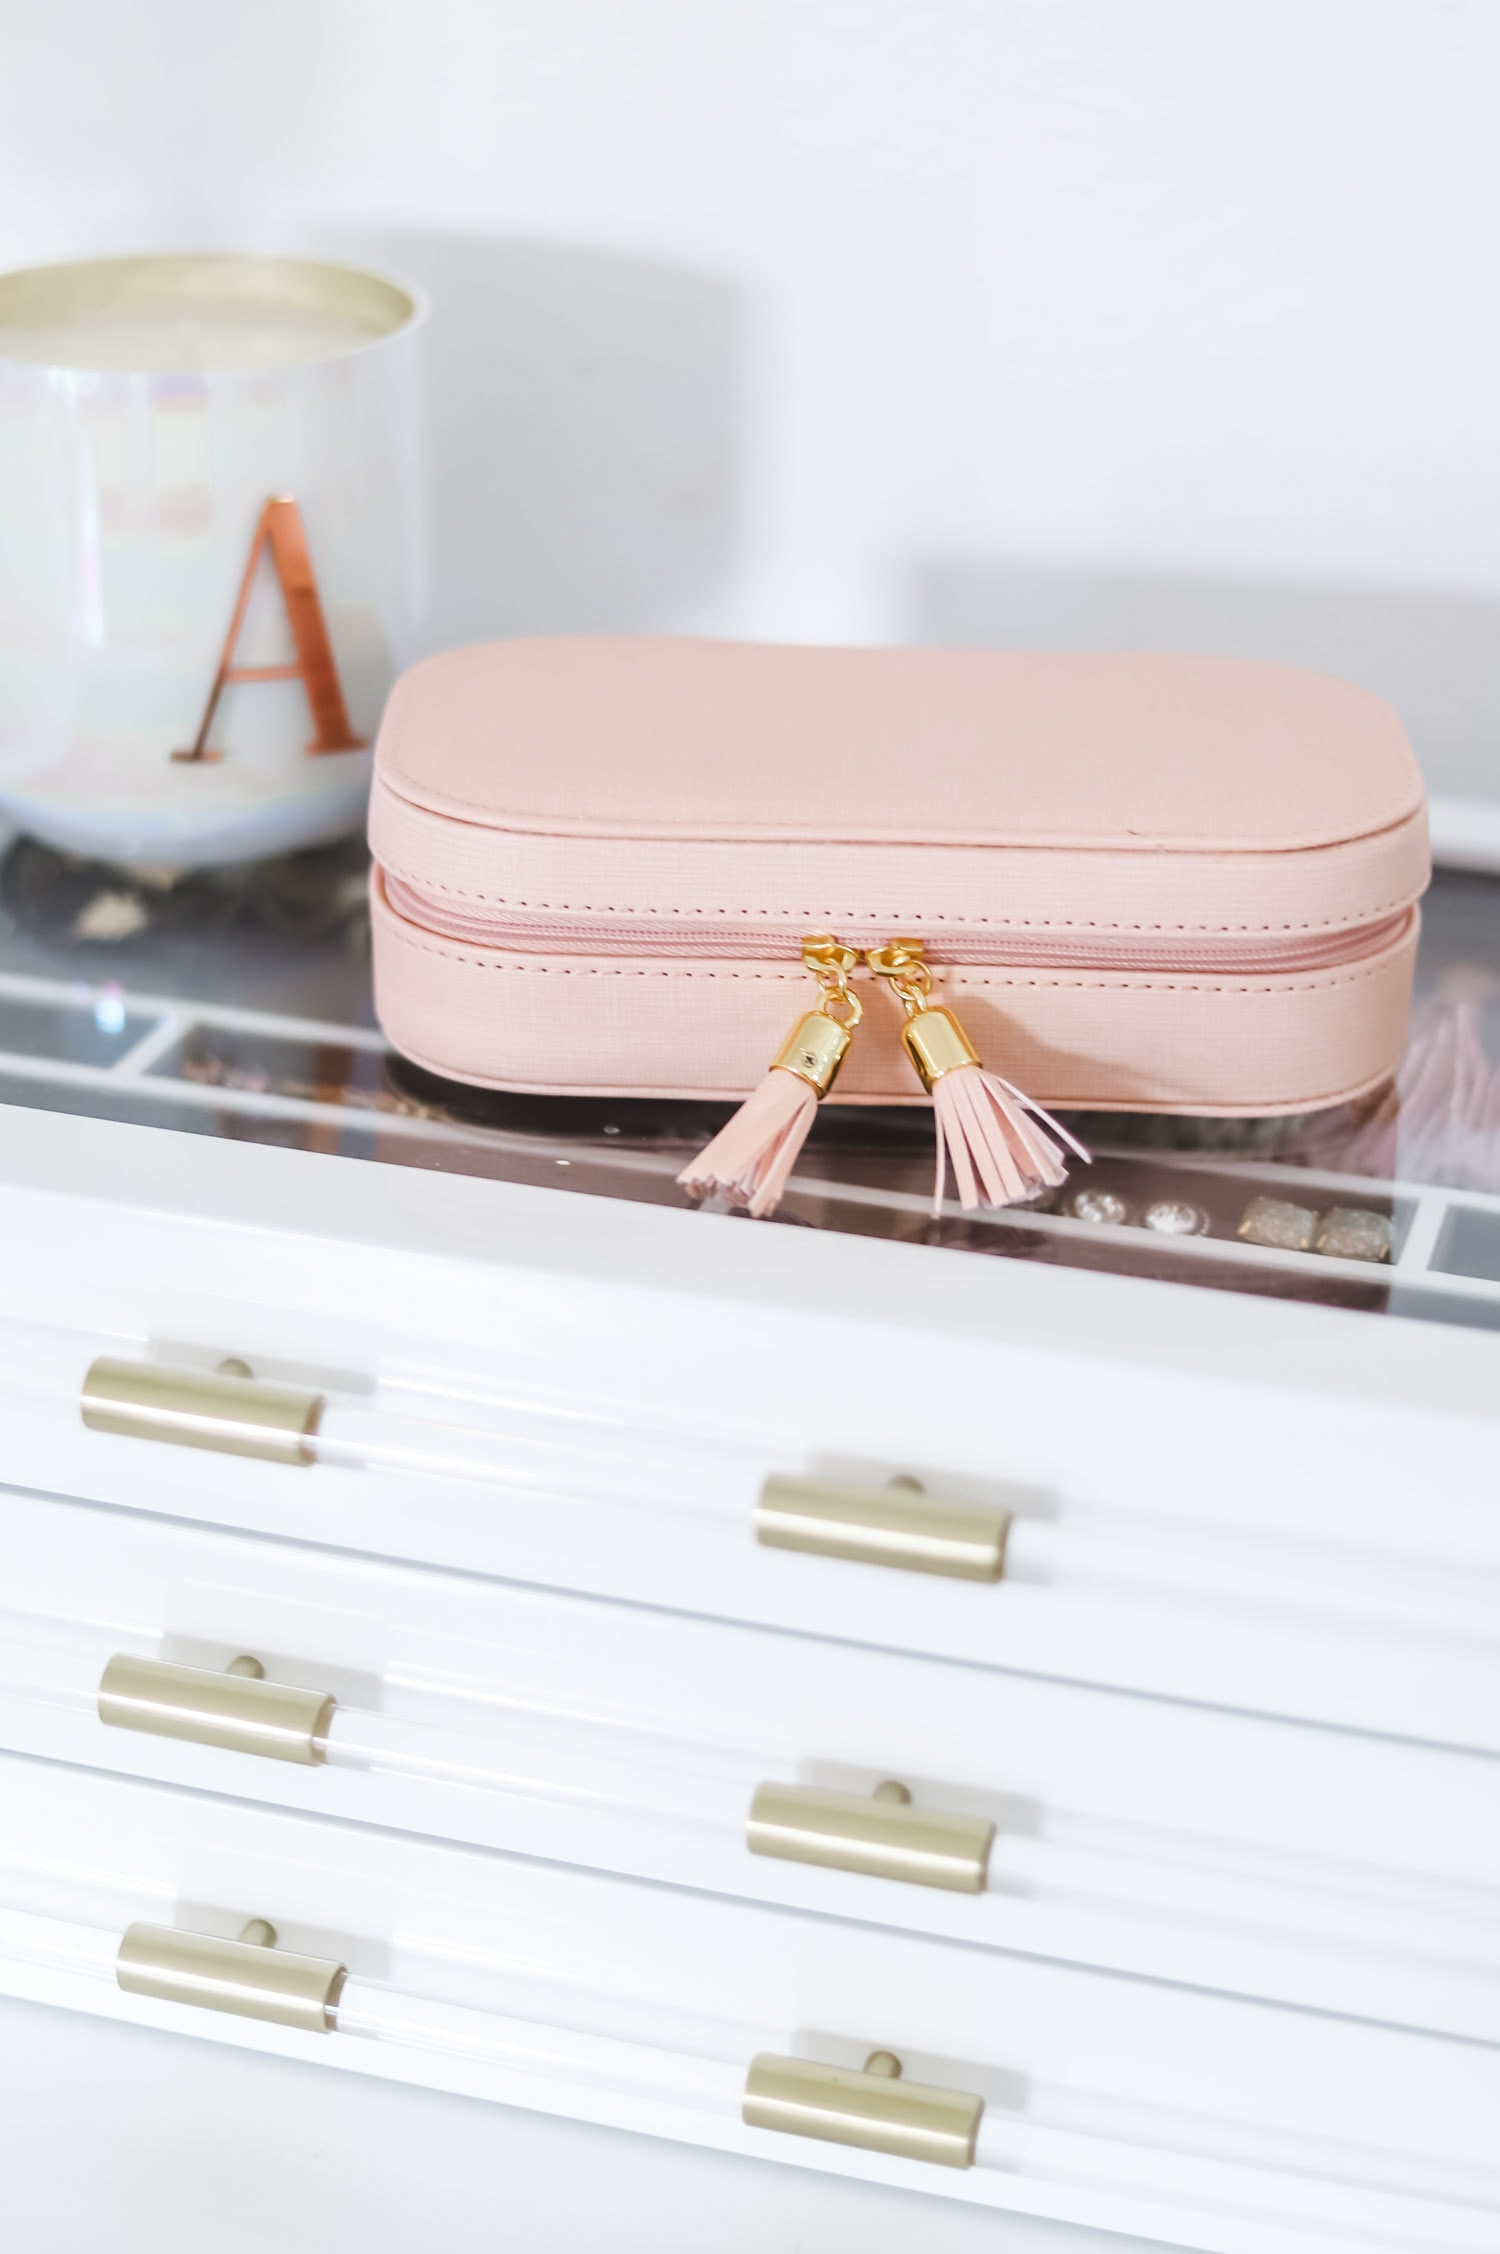 What to Buy On Amazon: the top beauty and fashion bestsellers from Amazon Prime - including the best travel jewelry organizer under $20! | Orlando, Florida beauty and fashion blogger Ashley Brooke Nicholas